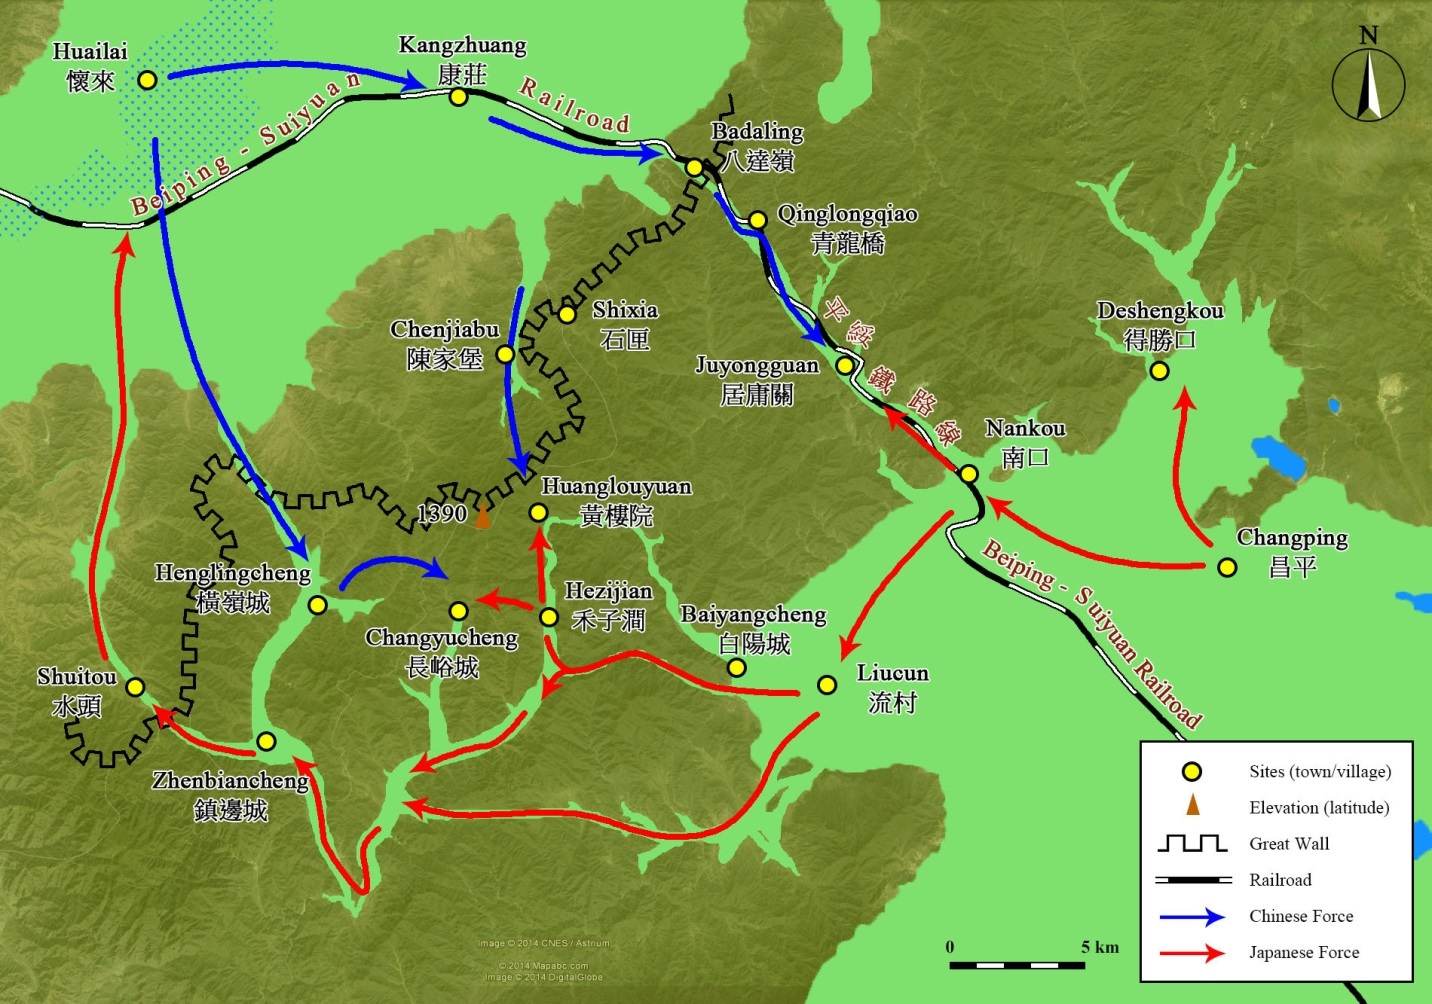 Operation chahar part 1 china in ww2 2 the main battlefield of the nankou campaign showing the movement of the armies and locations of critical sites gumiabroncs